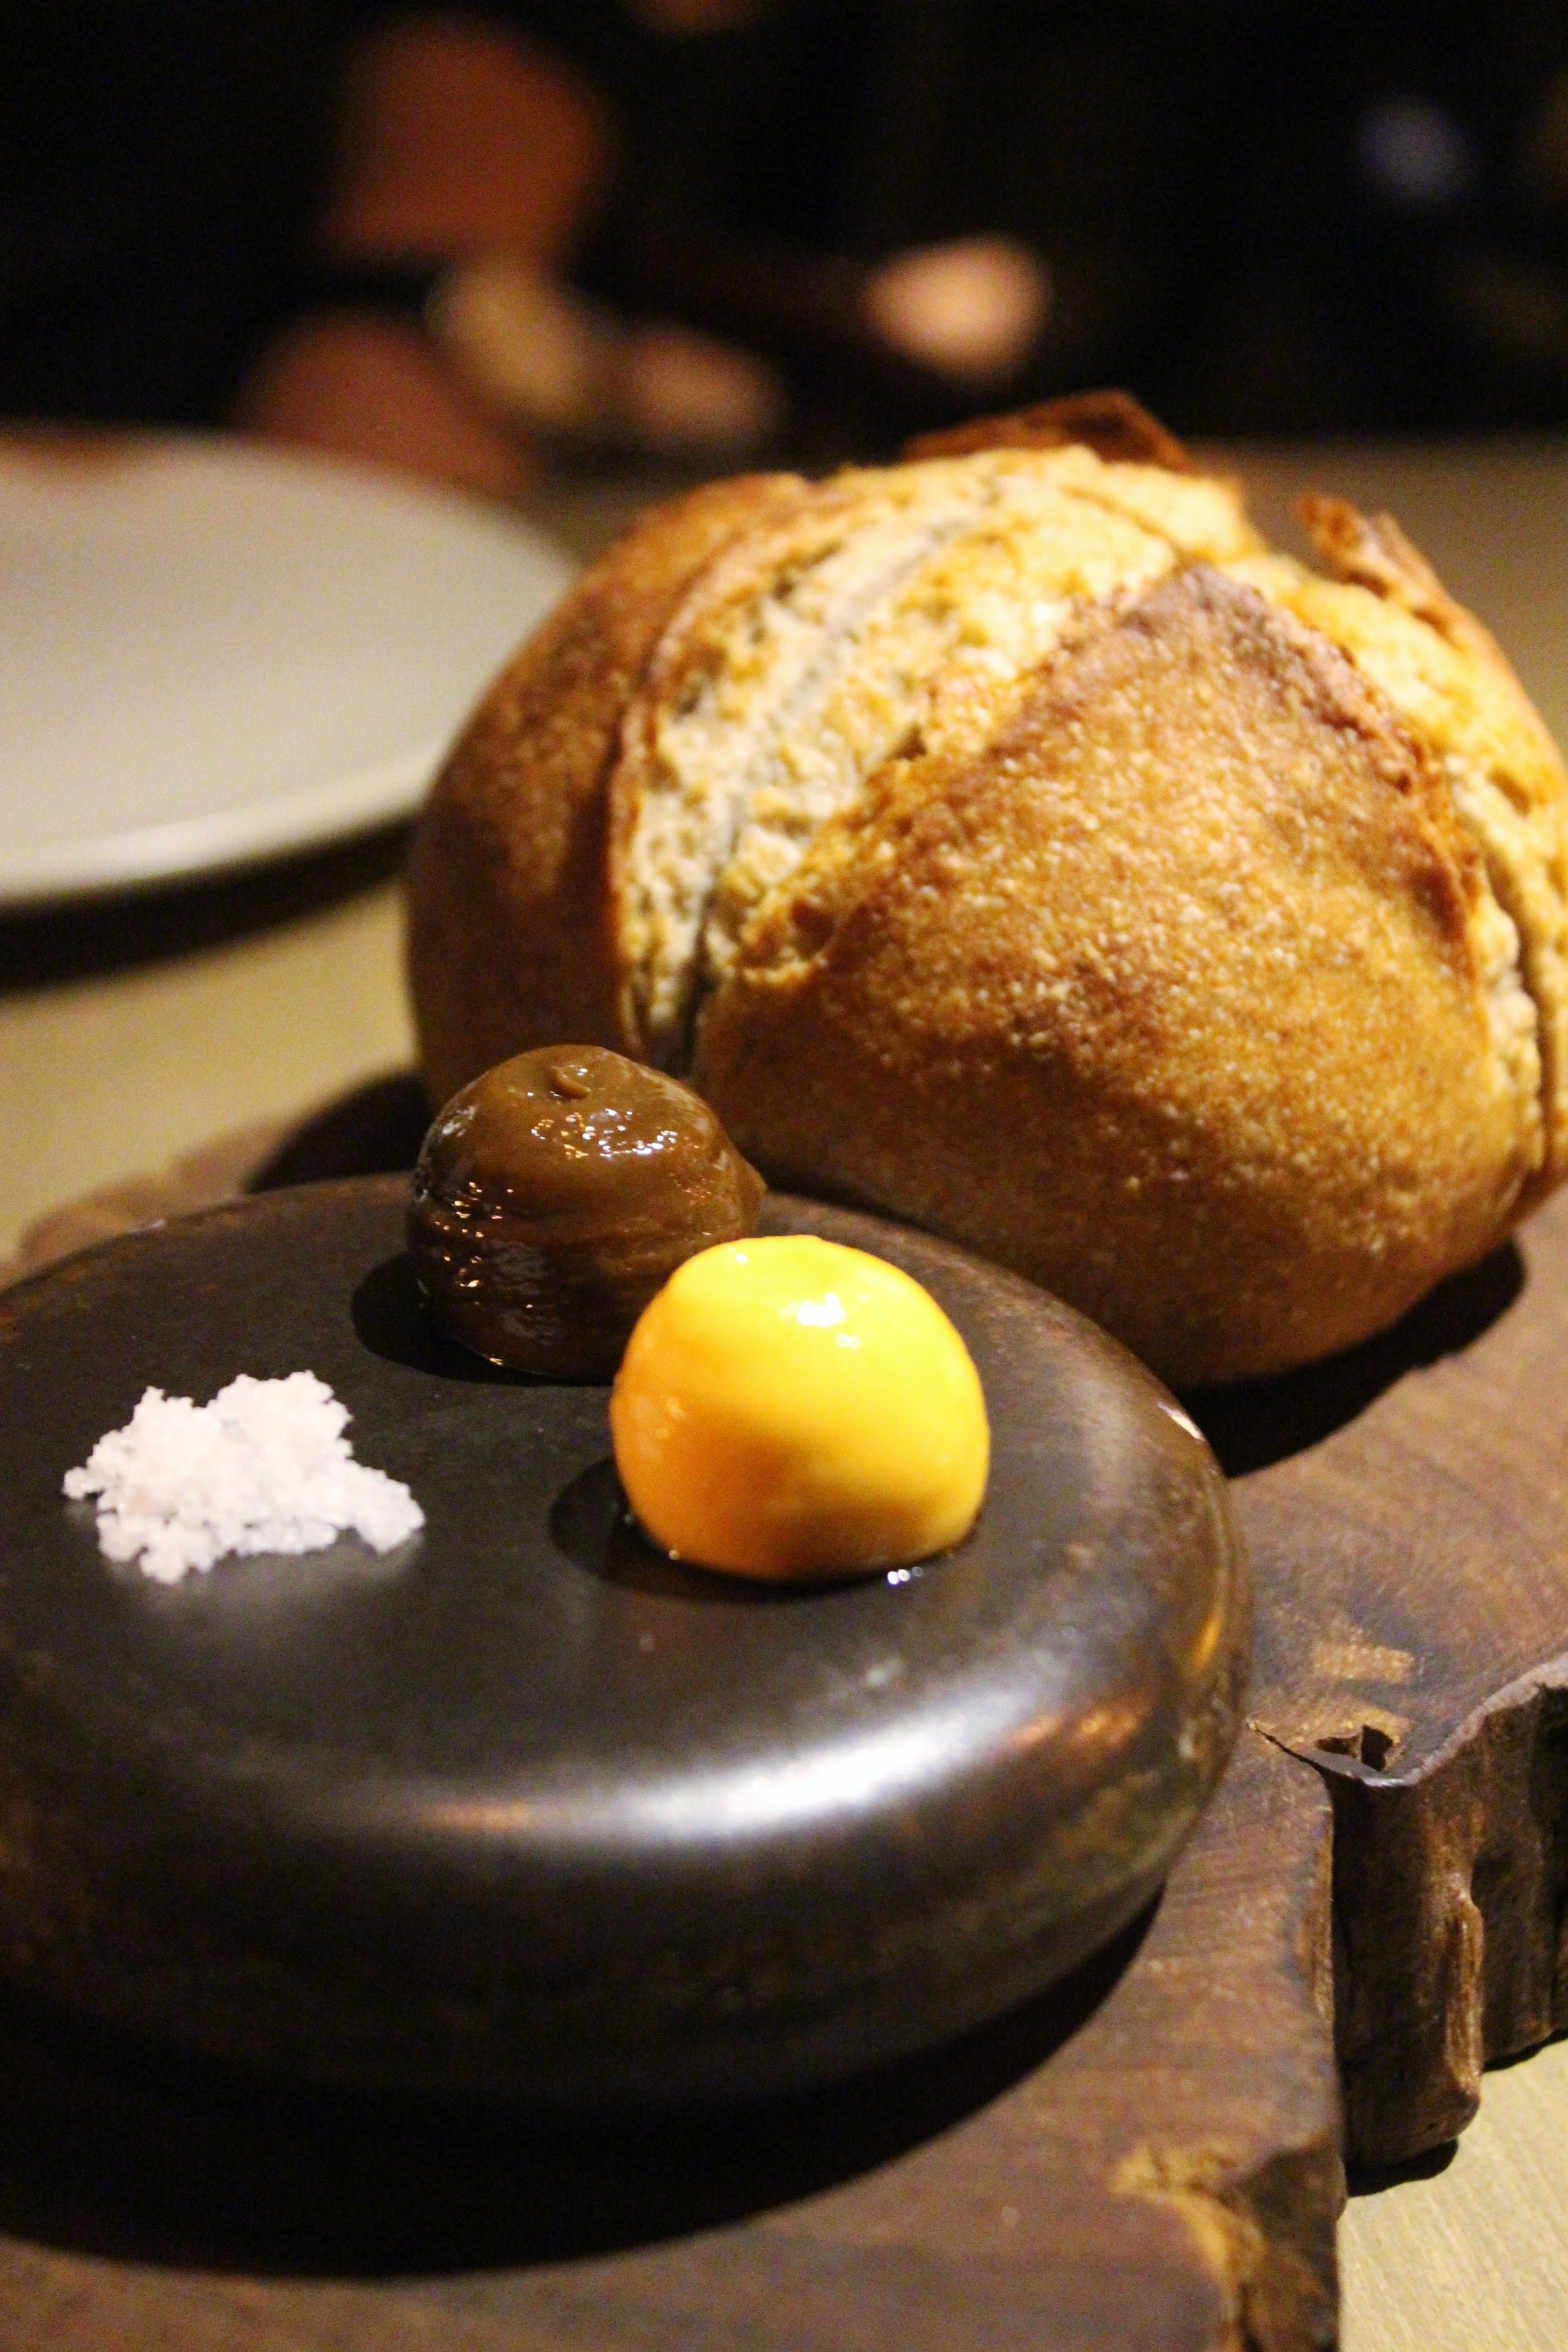 Country Sourdough with Beer Butter & Smoked Beef Fat Butter at Mume in Taiwan